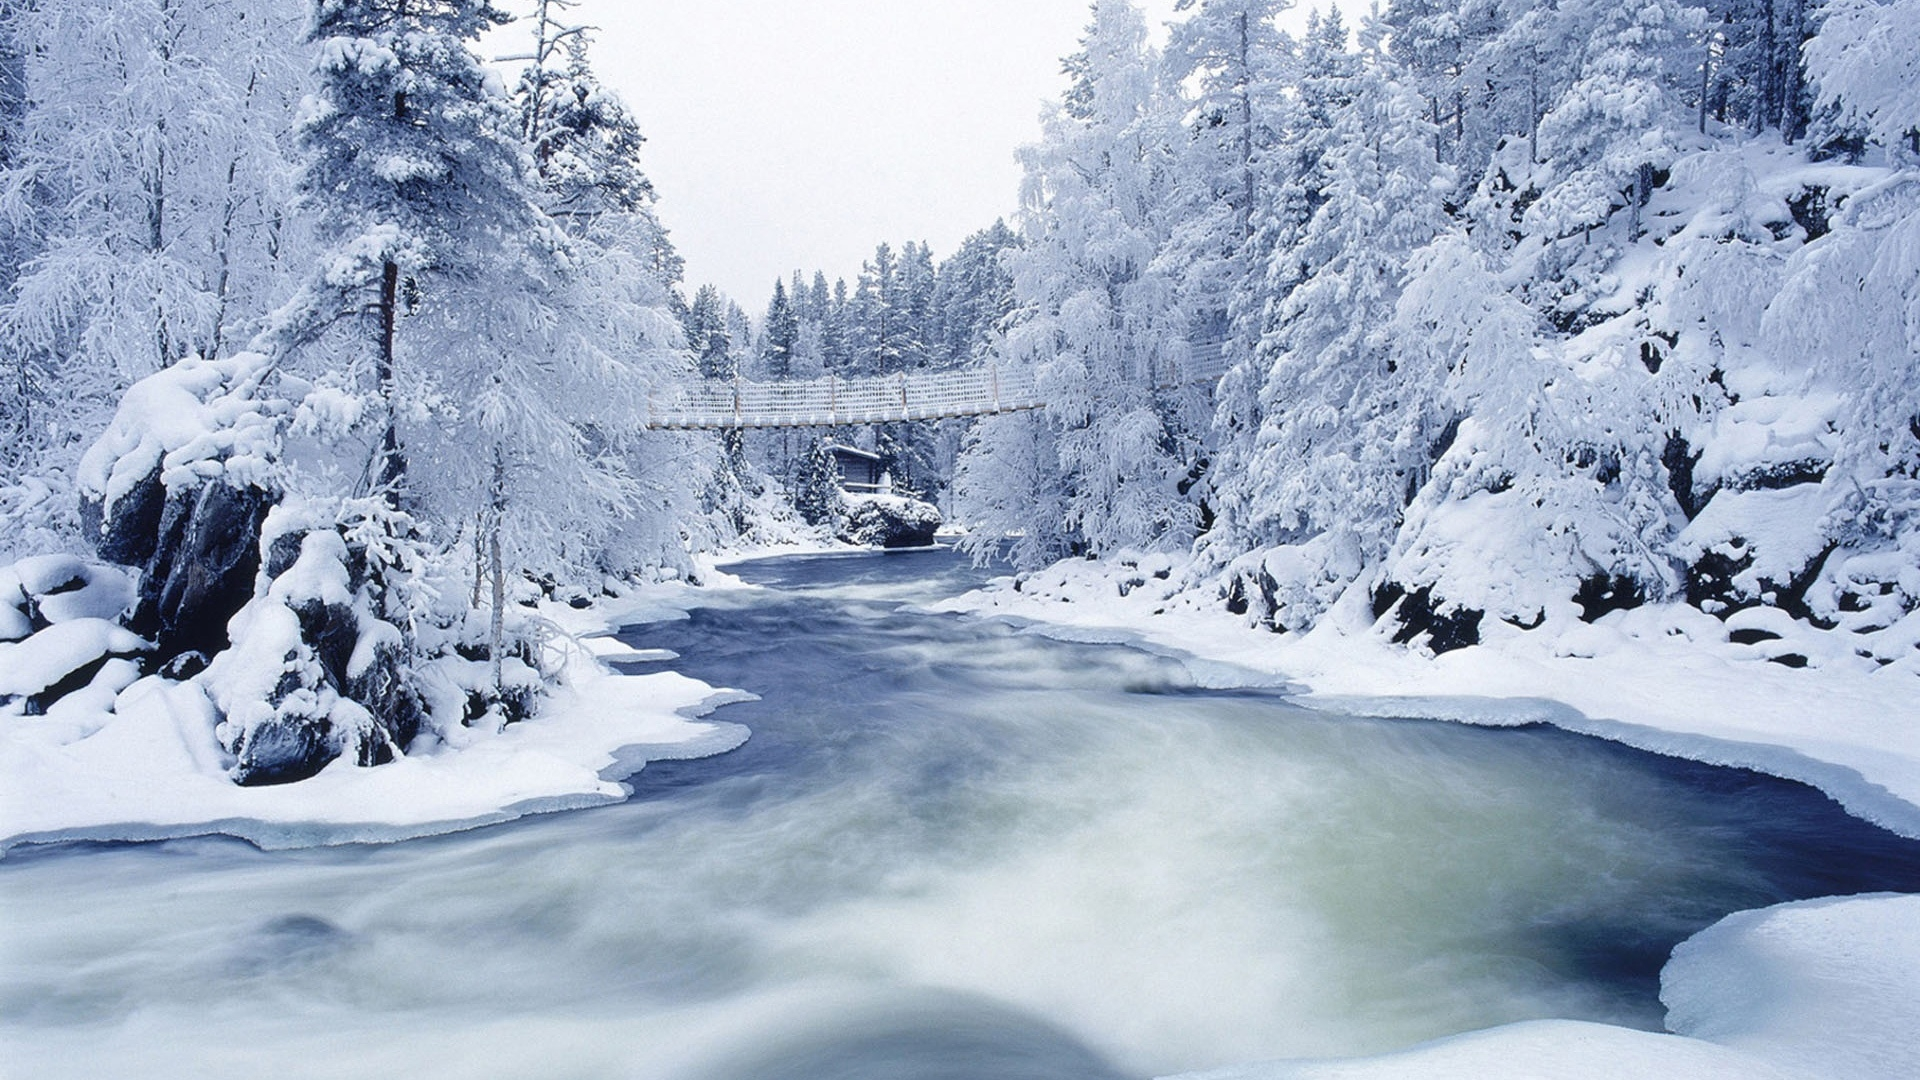 Frozen river and trees wallpapers | Frozen river and trees stock photos